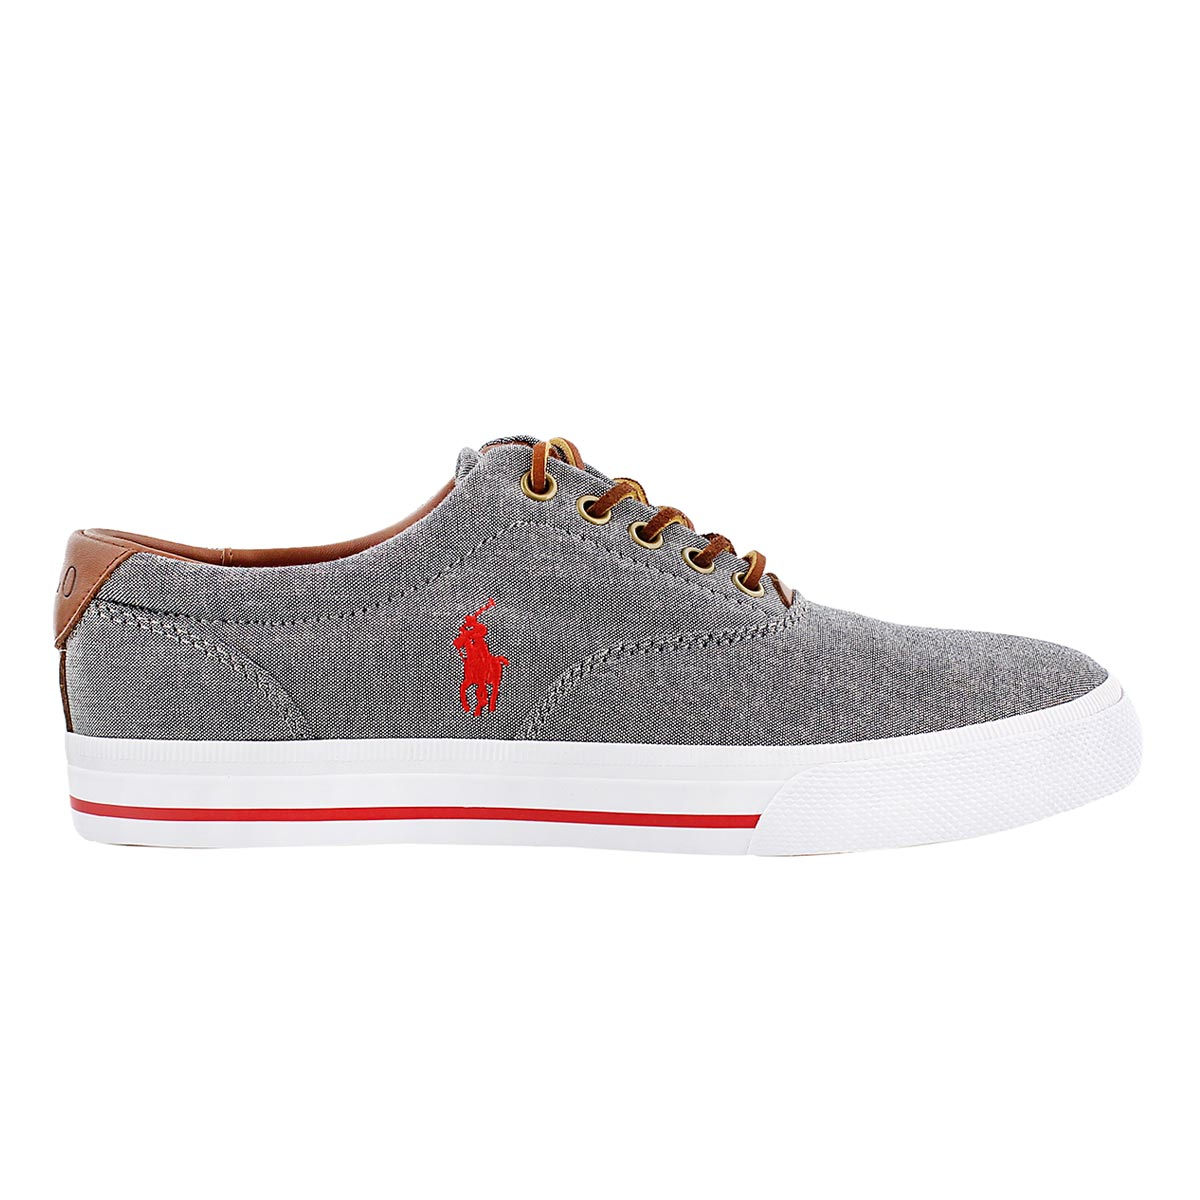 Mns Vaughn grey chambray/leather CVO